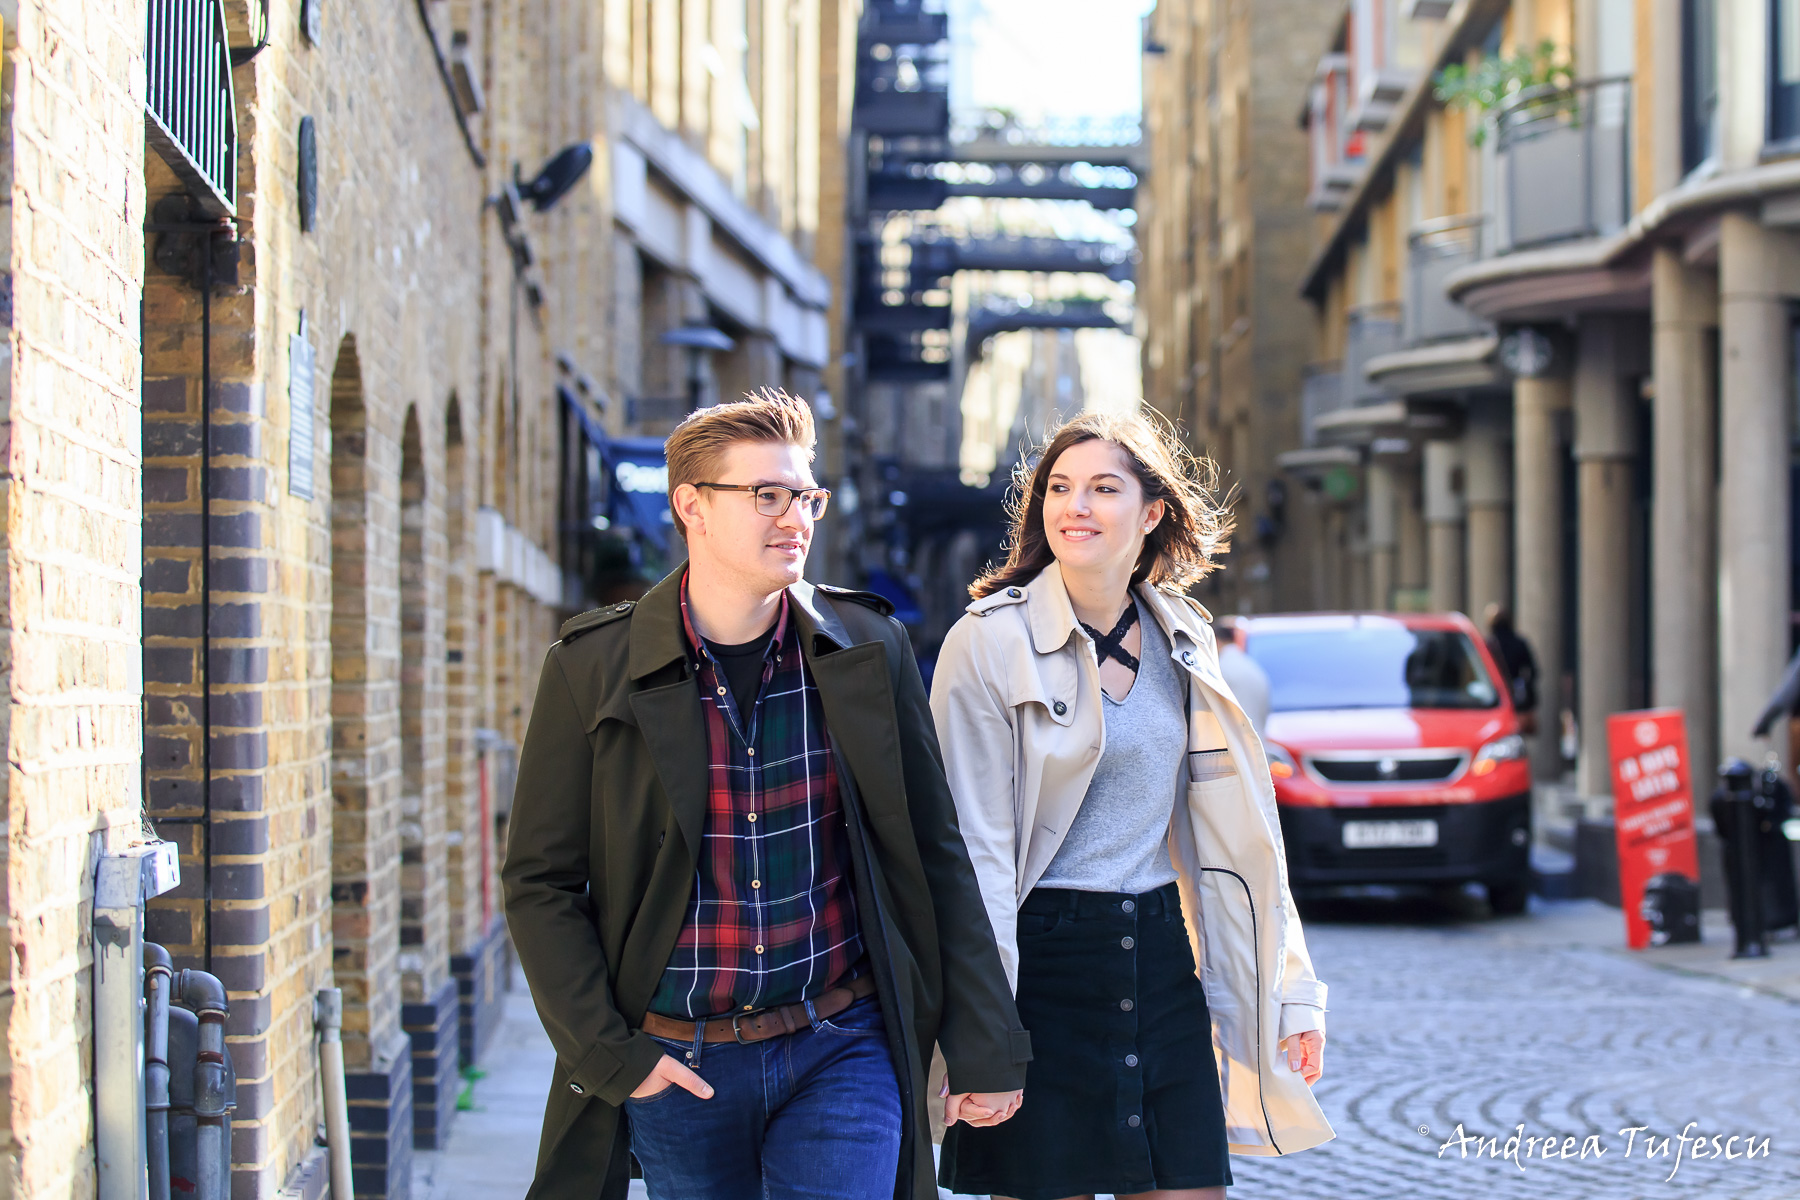 Sabrina & Timo Couple Photoshoot Central London - images by Andreea Tufescu